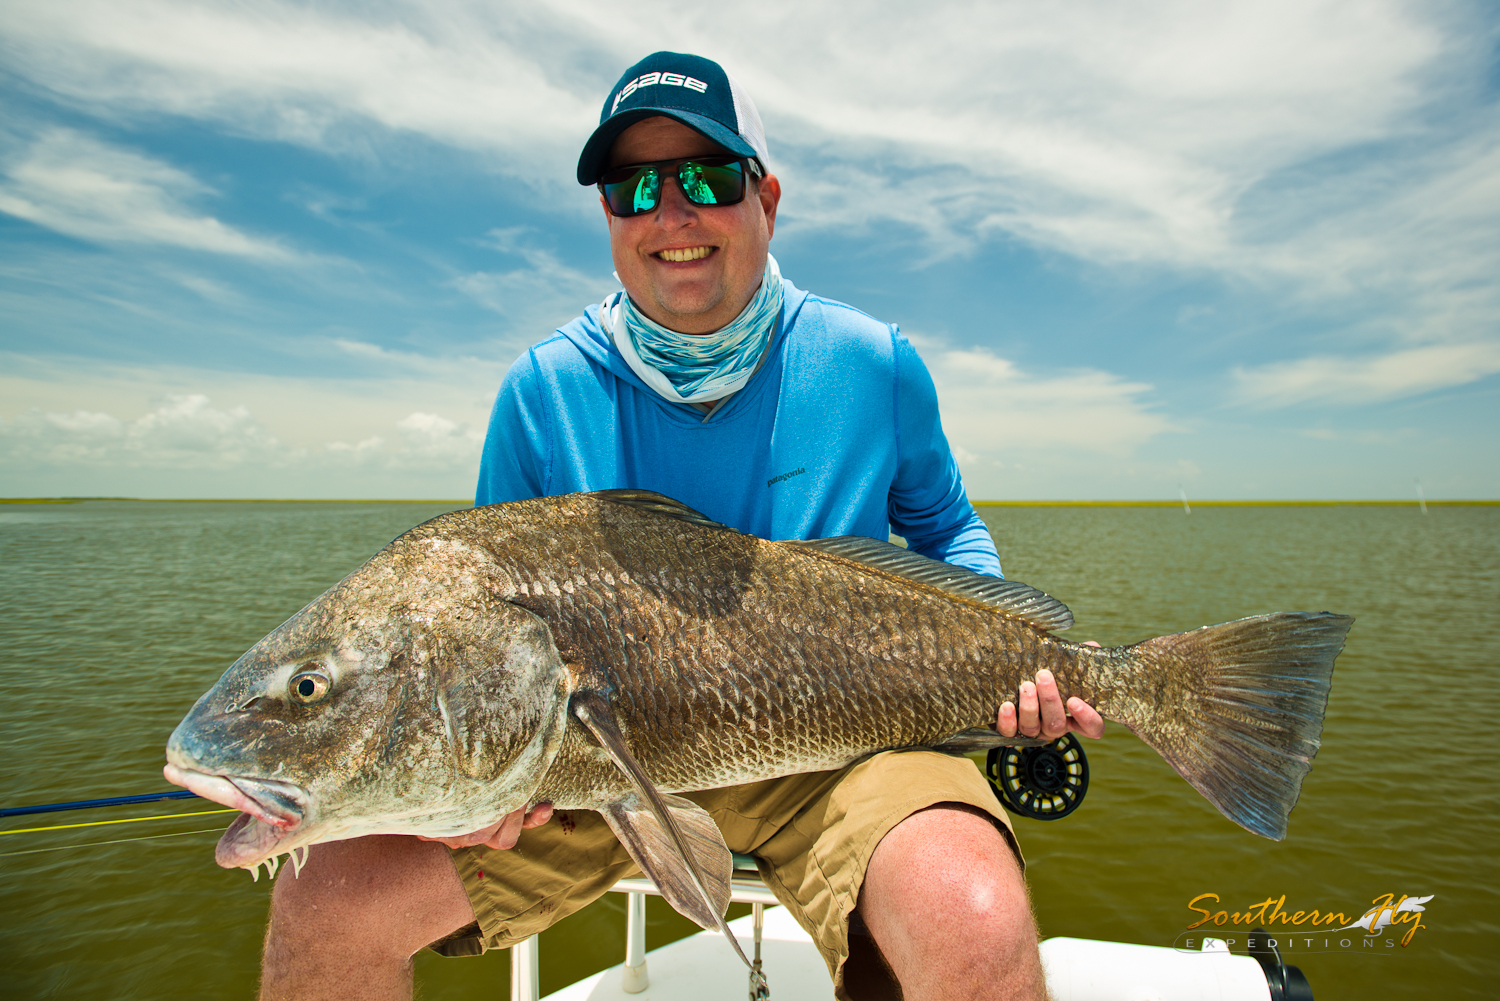 fly fishing new orleans la with Southern Fly Expeditions and captain brandon keck